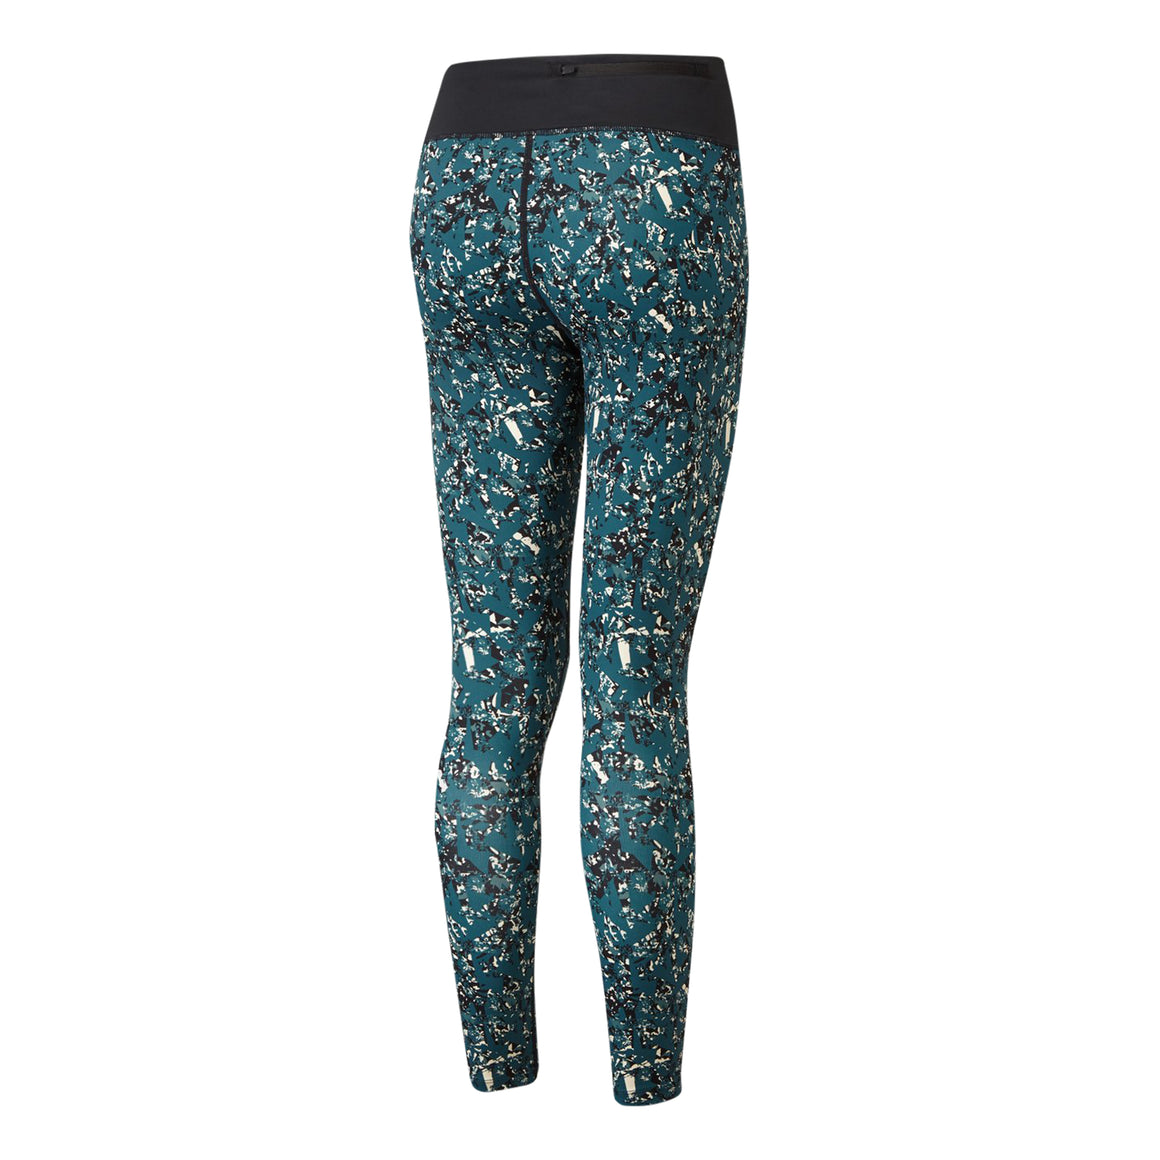 Life Tights for Women in Legion Blue Rockies